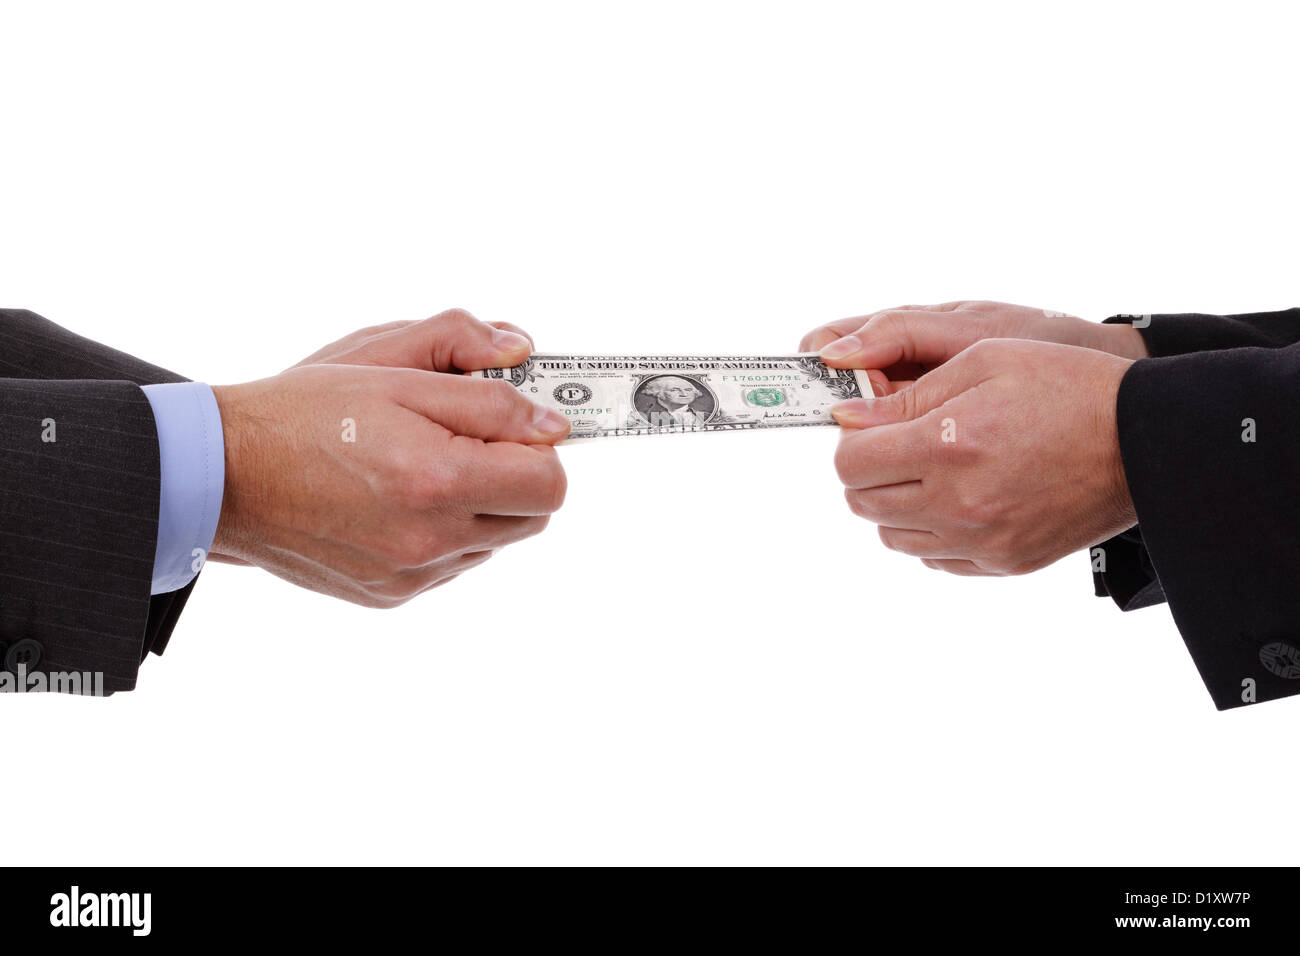 Arguing over money - Stock Image